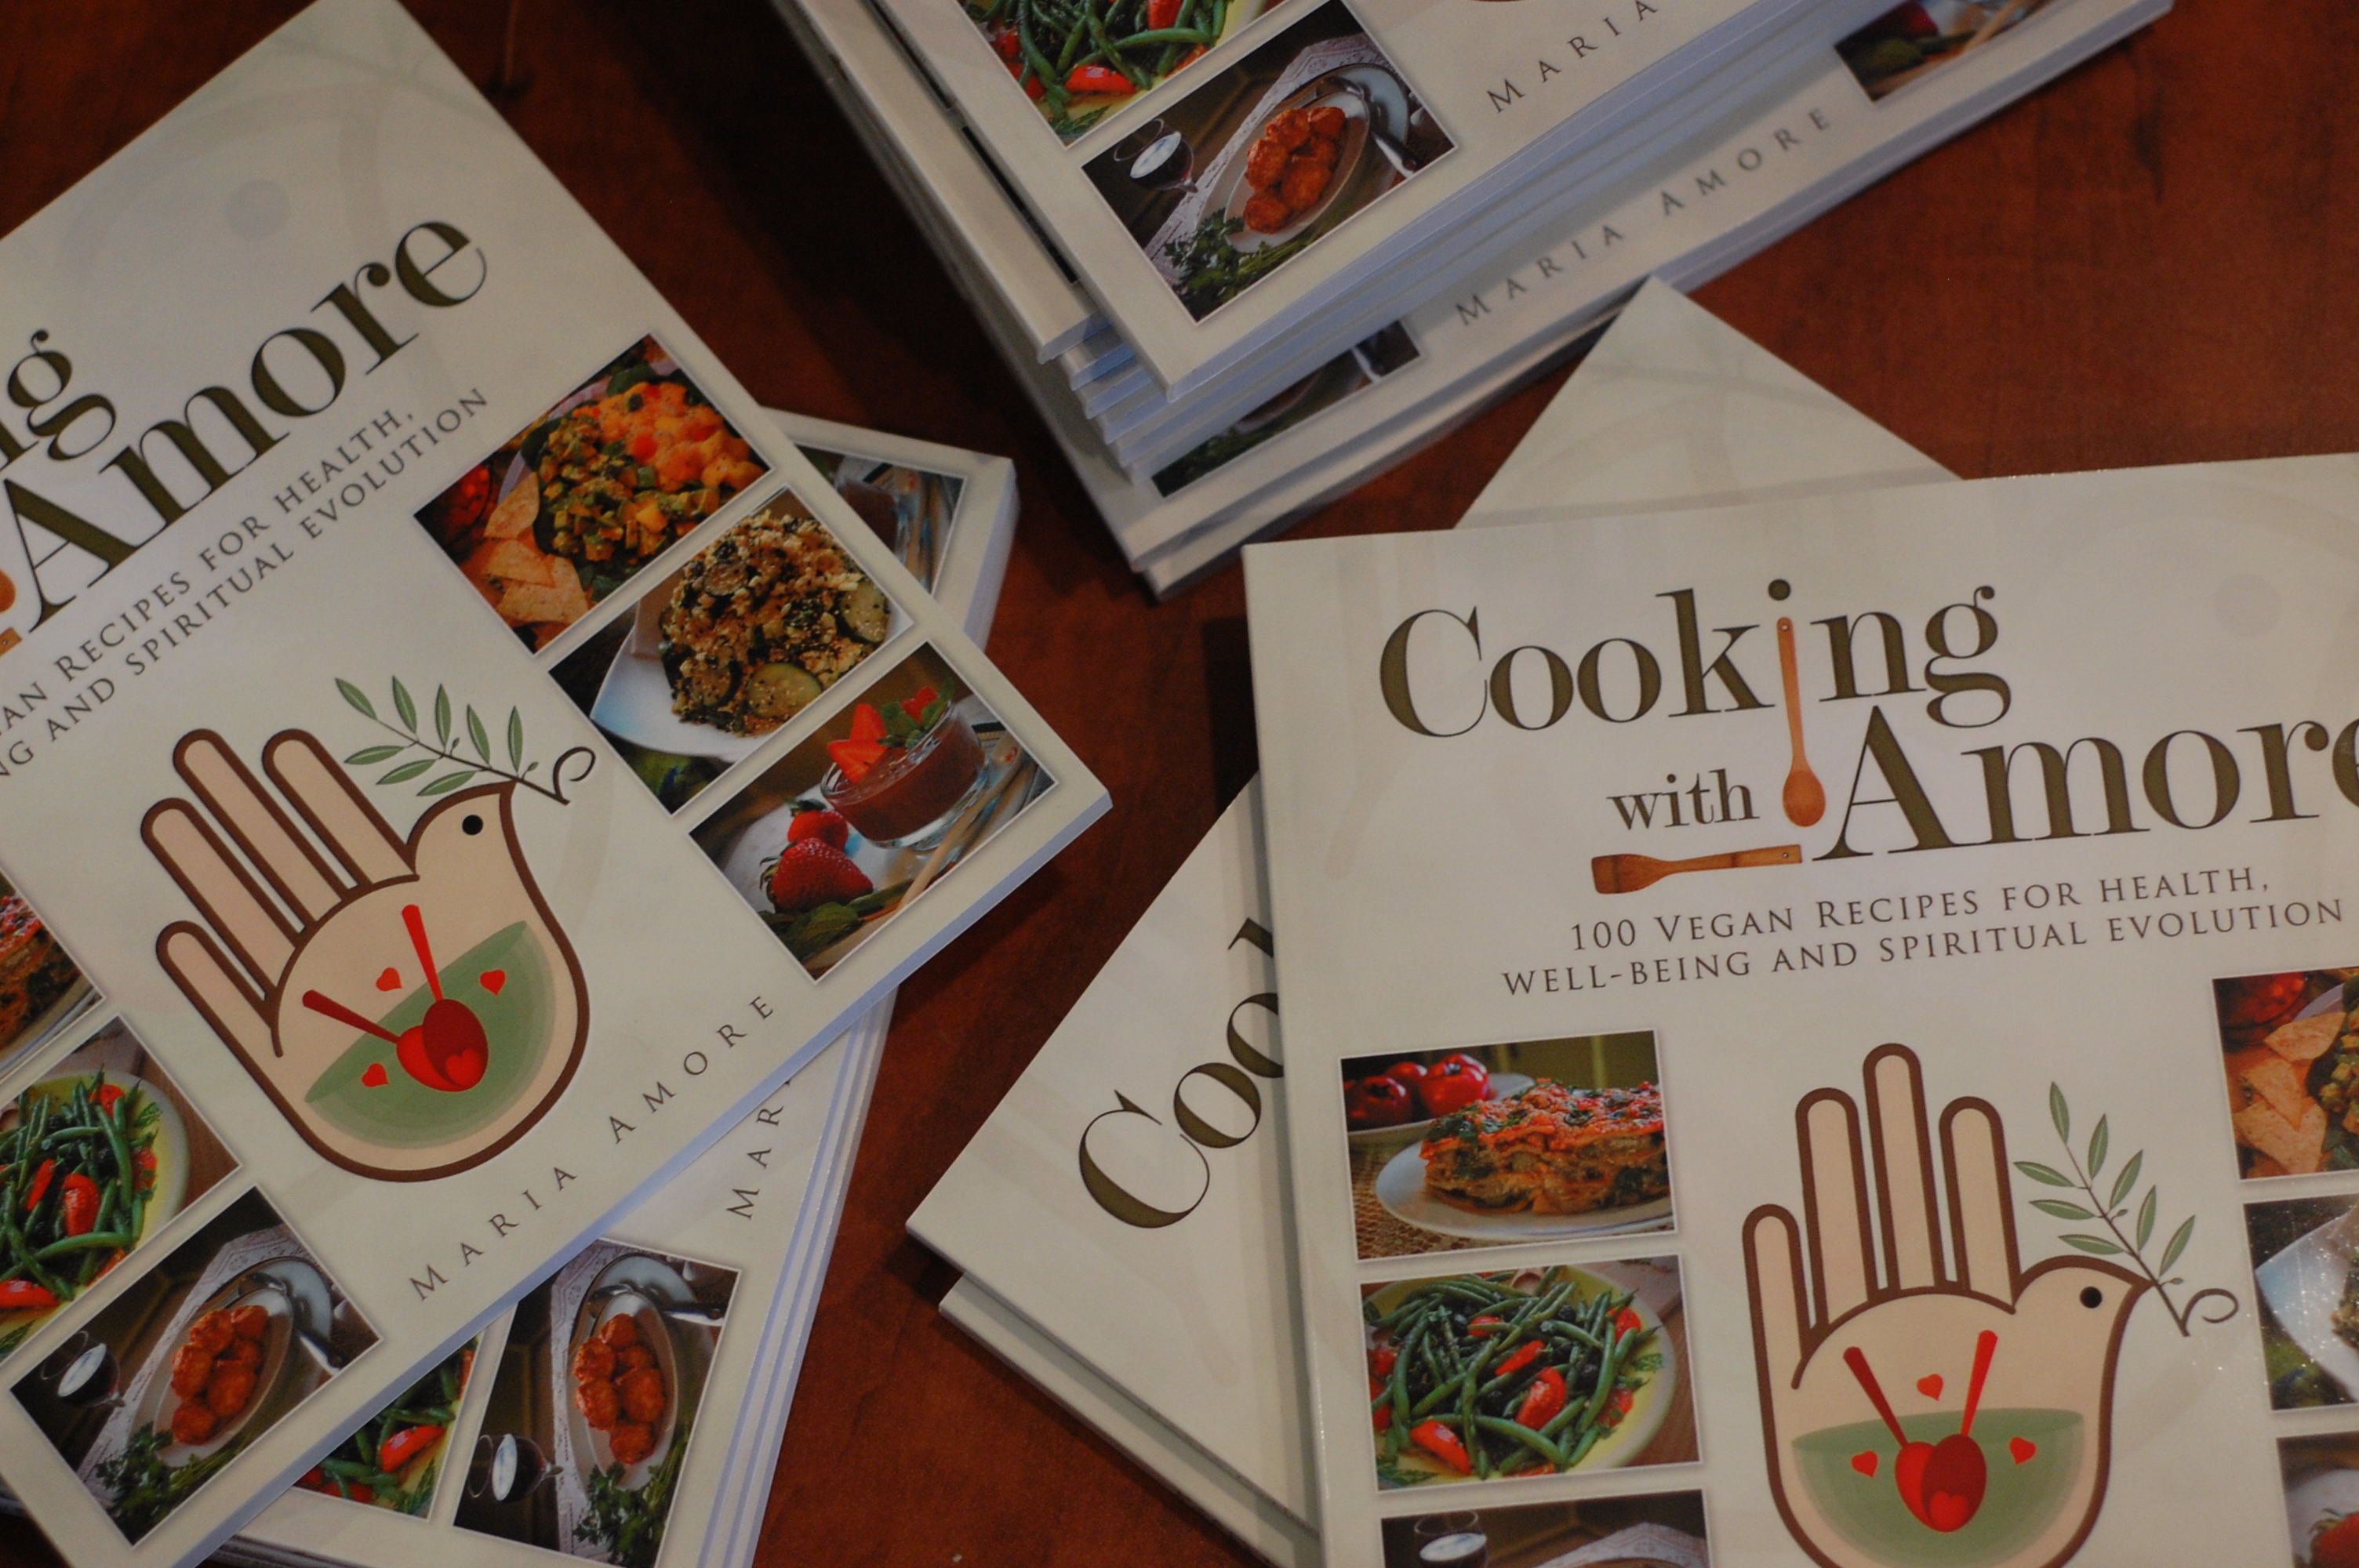 Amore's new cookbook